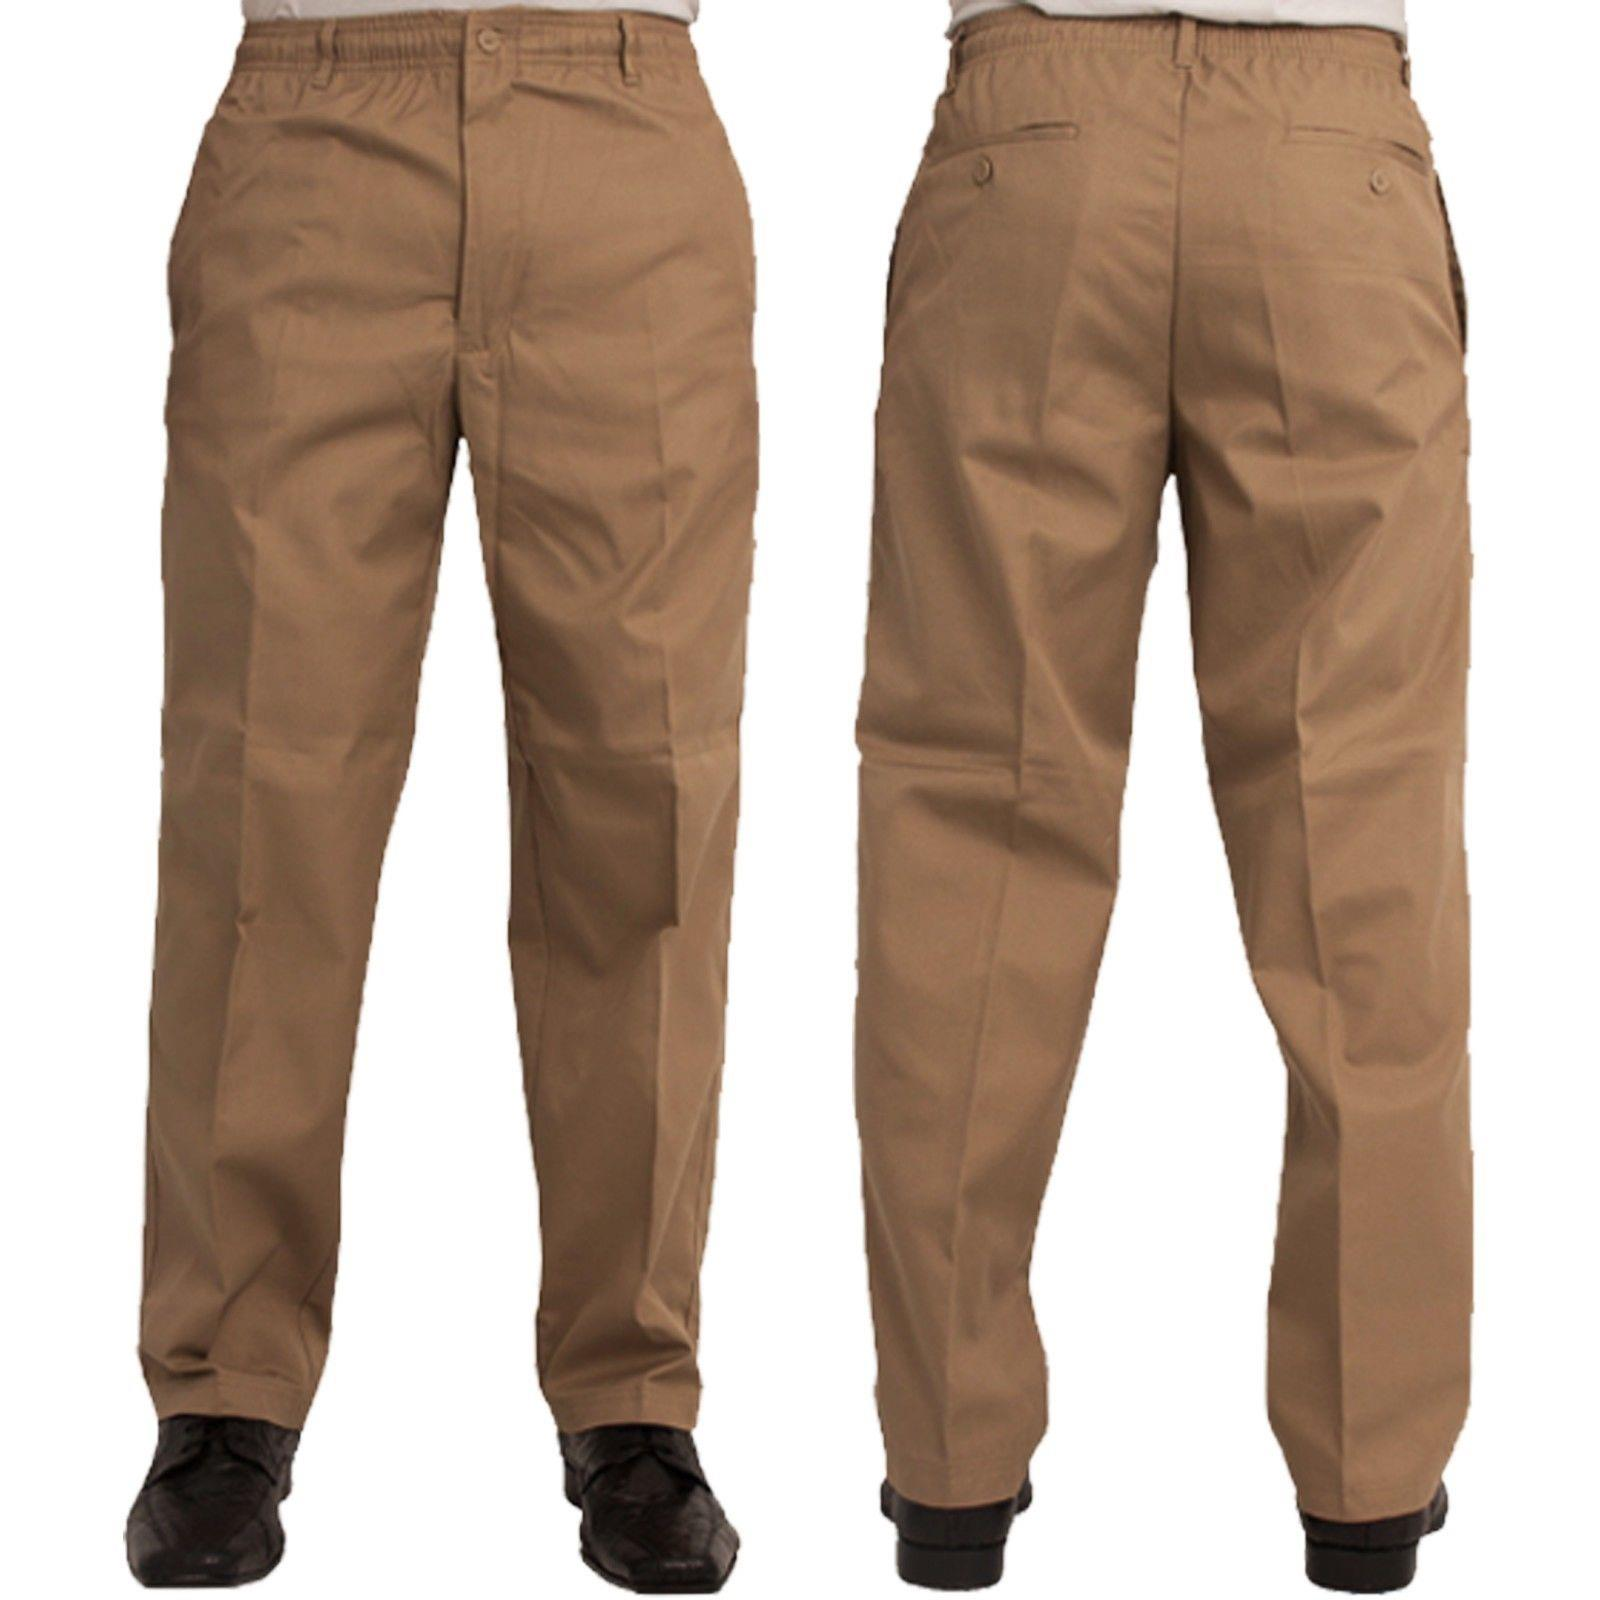 elastic waist rugby trousers (sand) (size 42